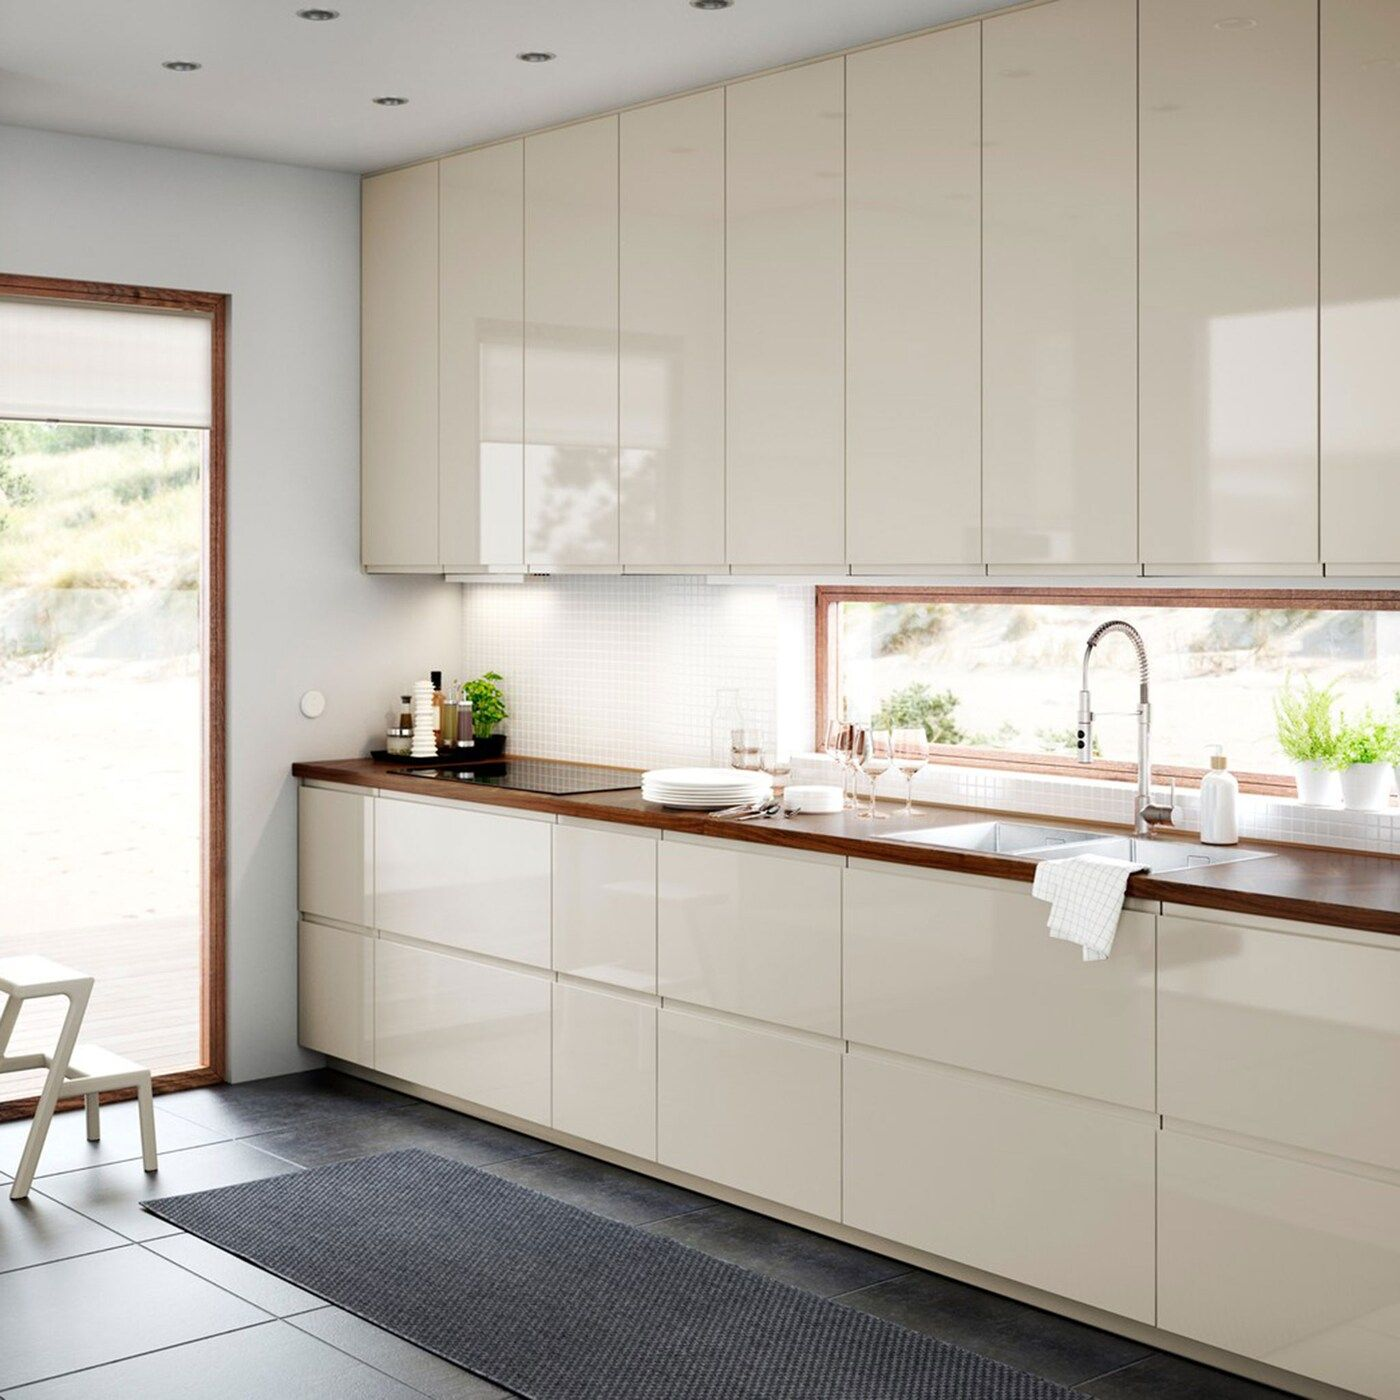 High Gloss Kitchen Cabinets For Smart And Sleek Style In 2020